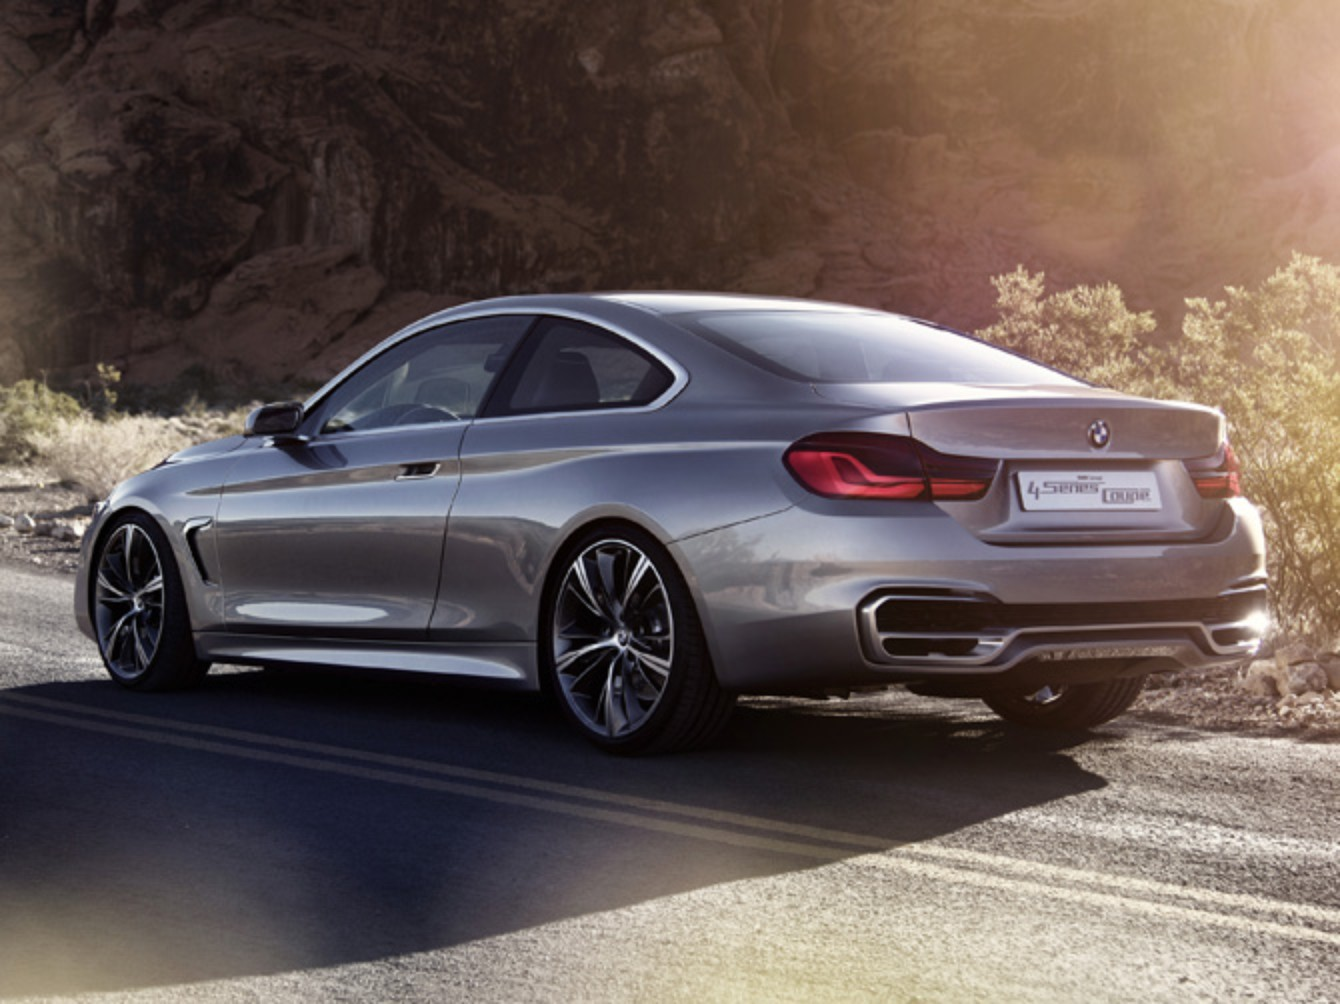 2019 BMW 4 Series Coupe Concept photo - 5